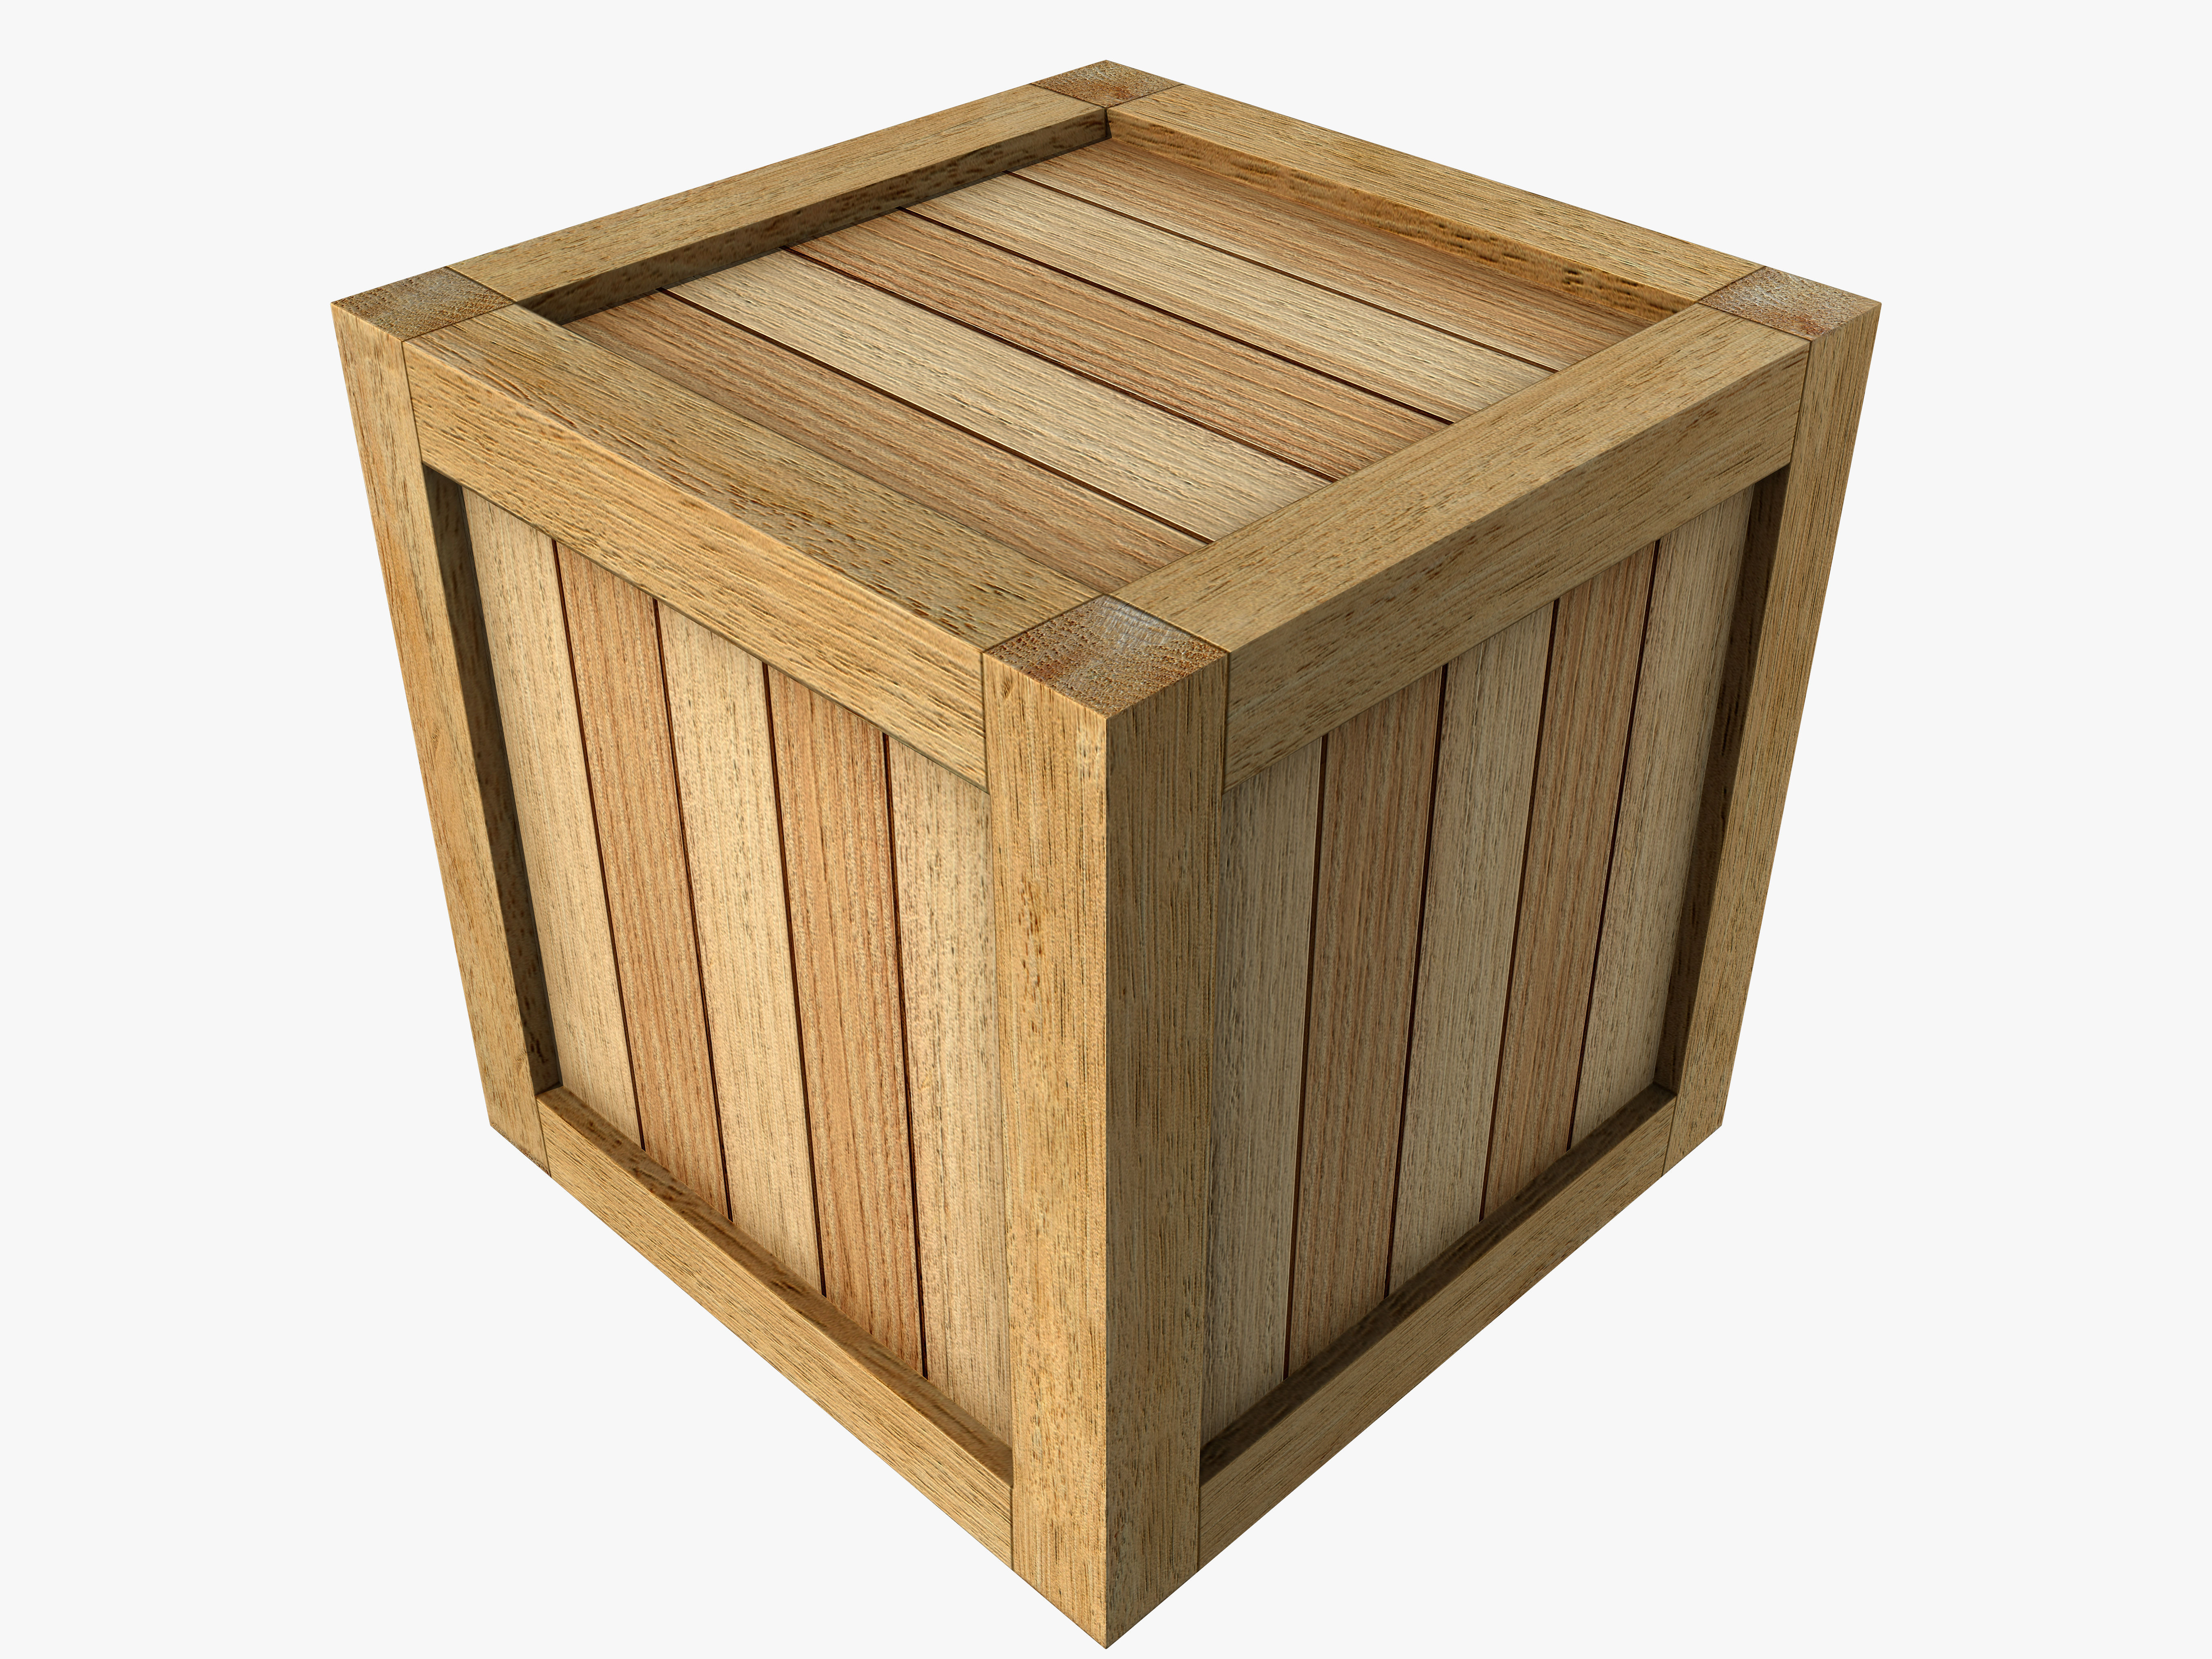 Pictures of Rectangle Box 3d - #rock-cafe